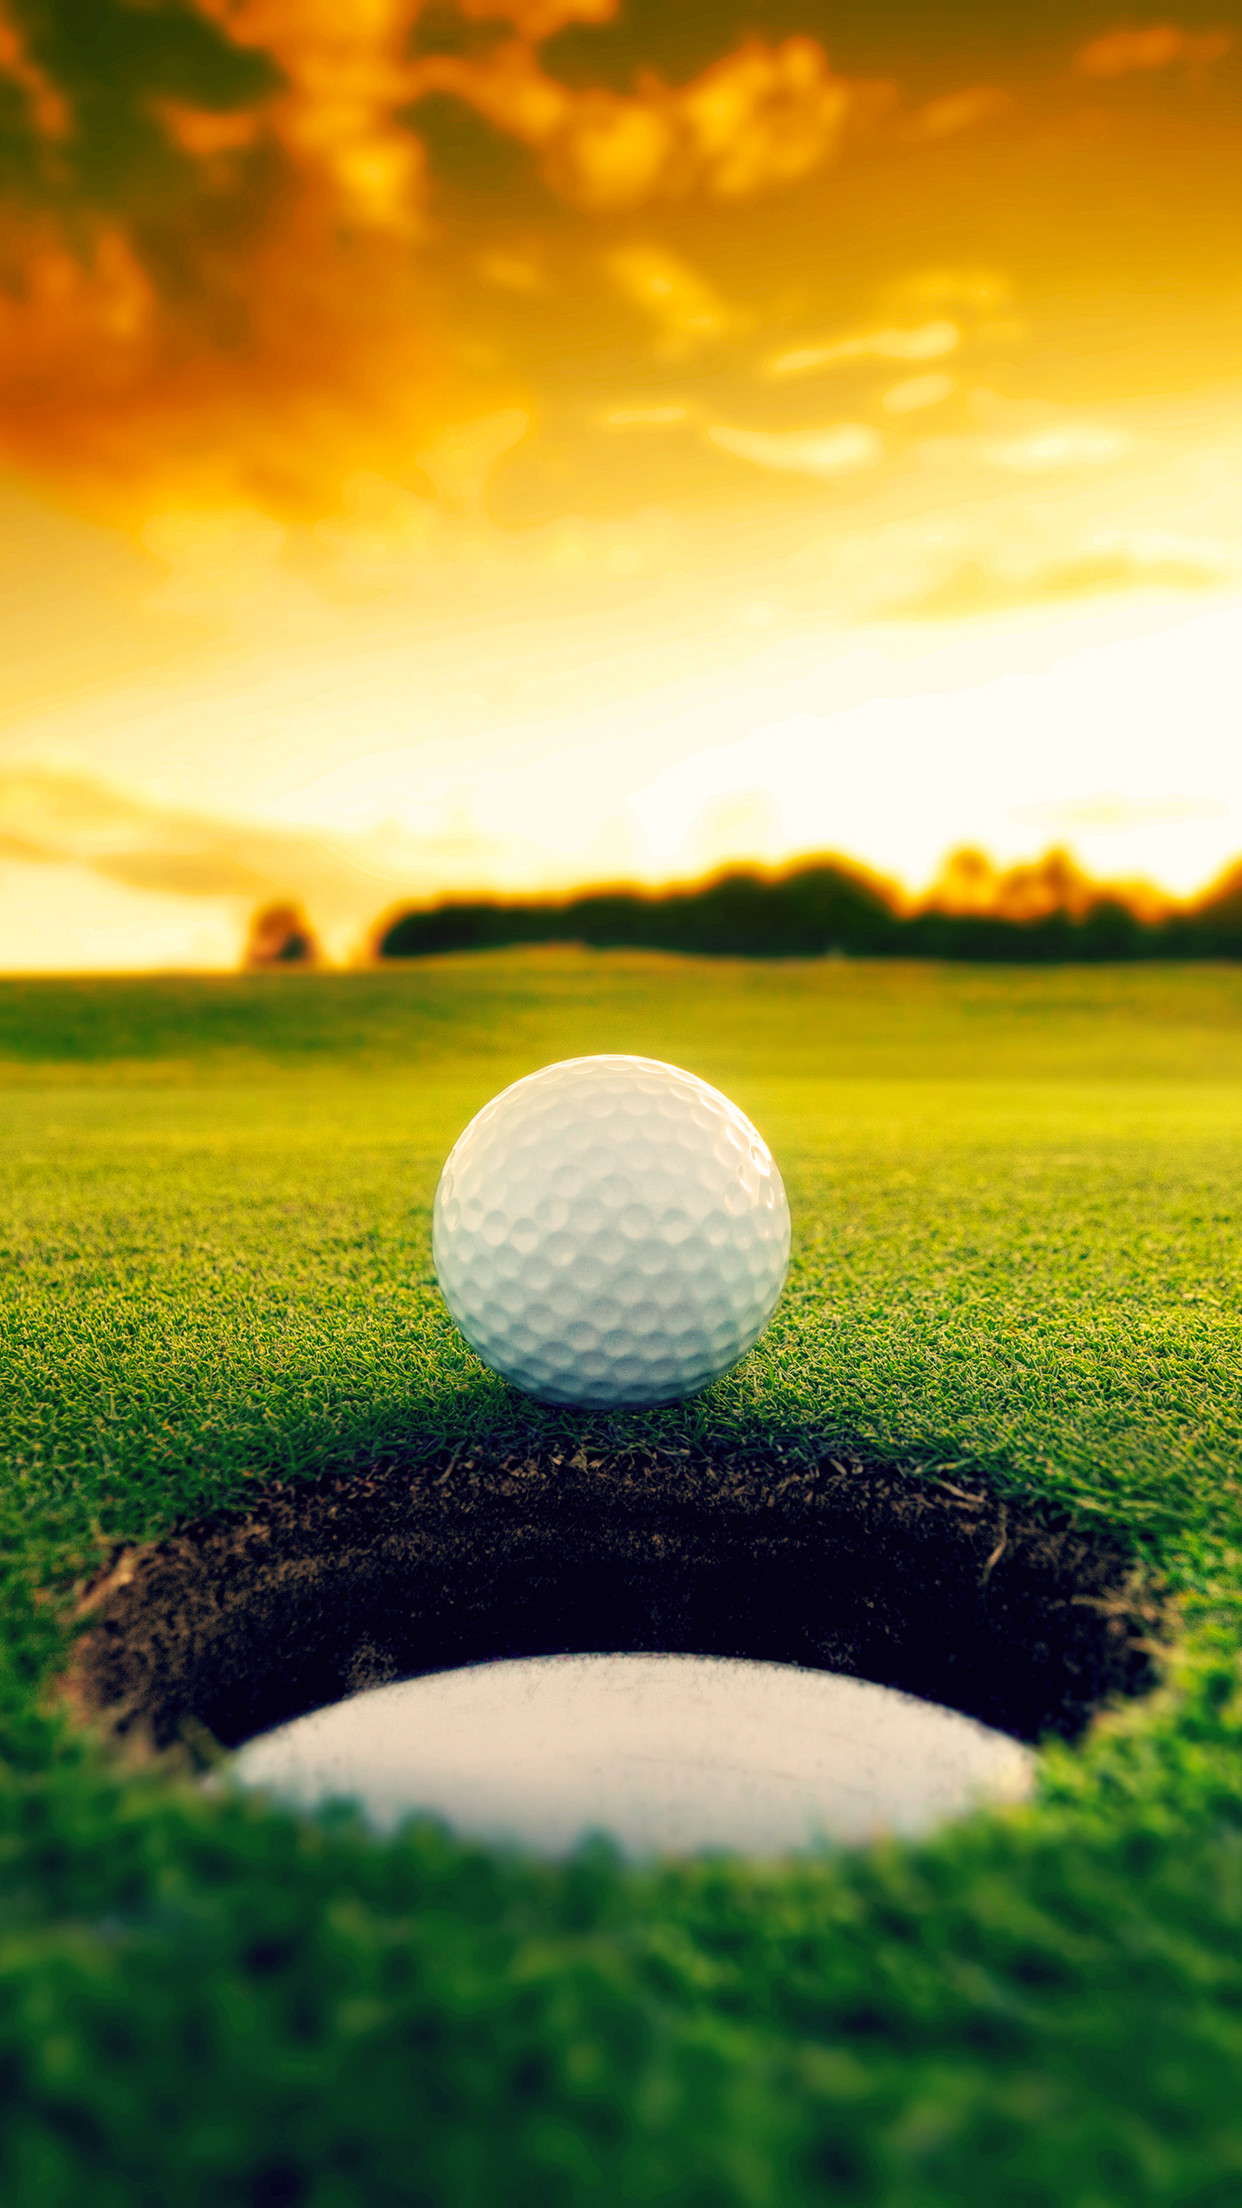 Golf Sunrise 3Wallpapers iPhone Parallax Les 3 Wallpapers iPhone du .